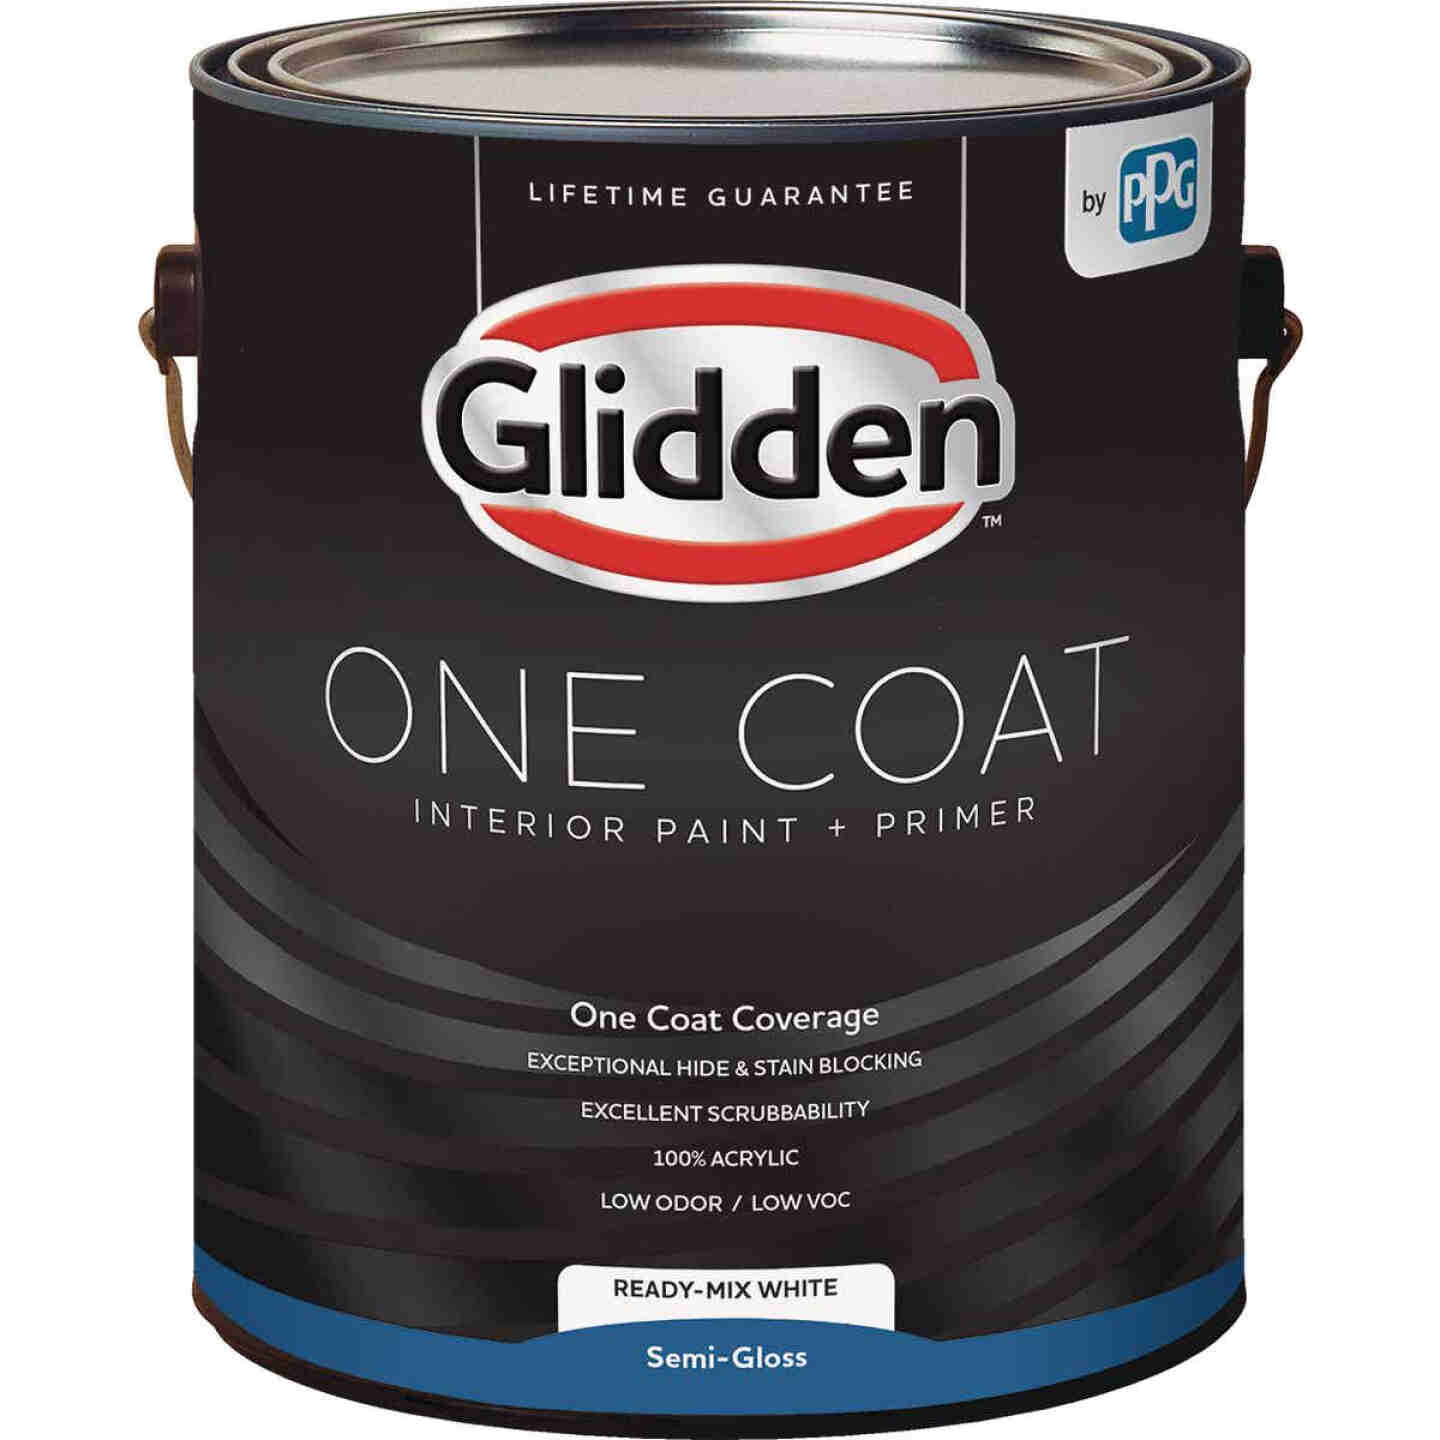 Glidden One Coat Interior Paint + Primer Semi-Gloss Ready Mix White 1 Gallon Image 1